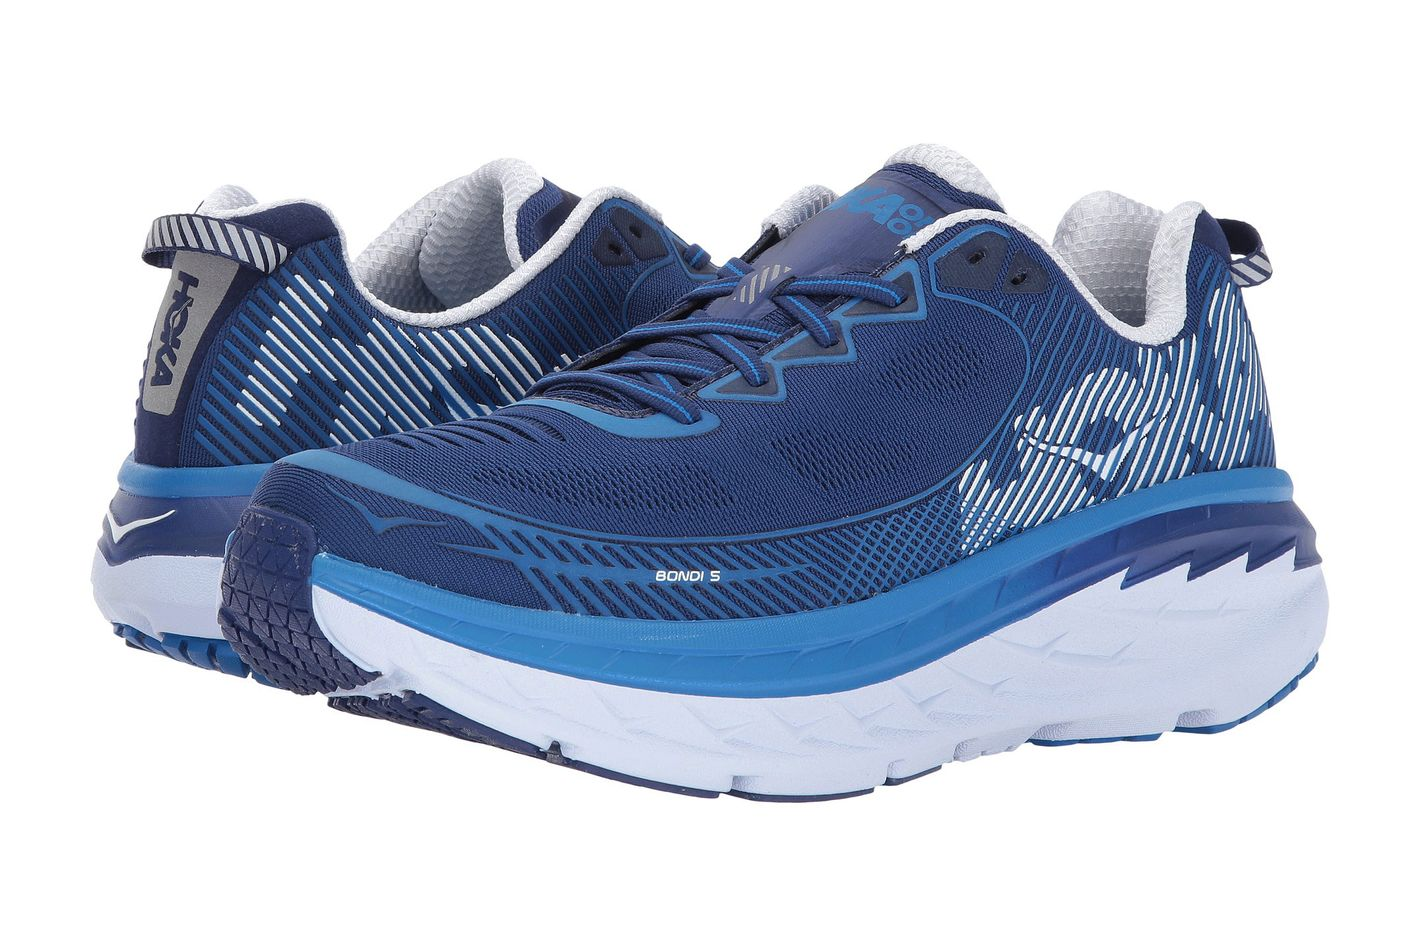 a694e6cfce3a1b 8 Best Running Shoes for Men 2018